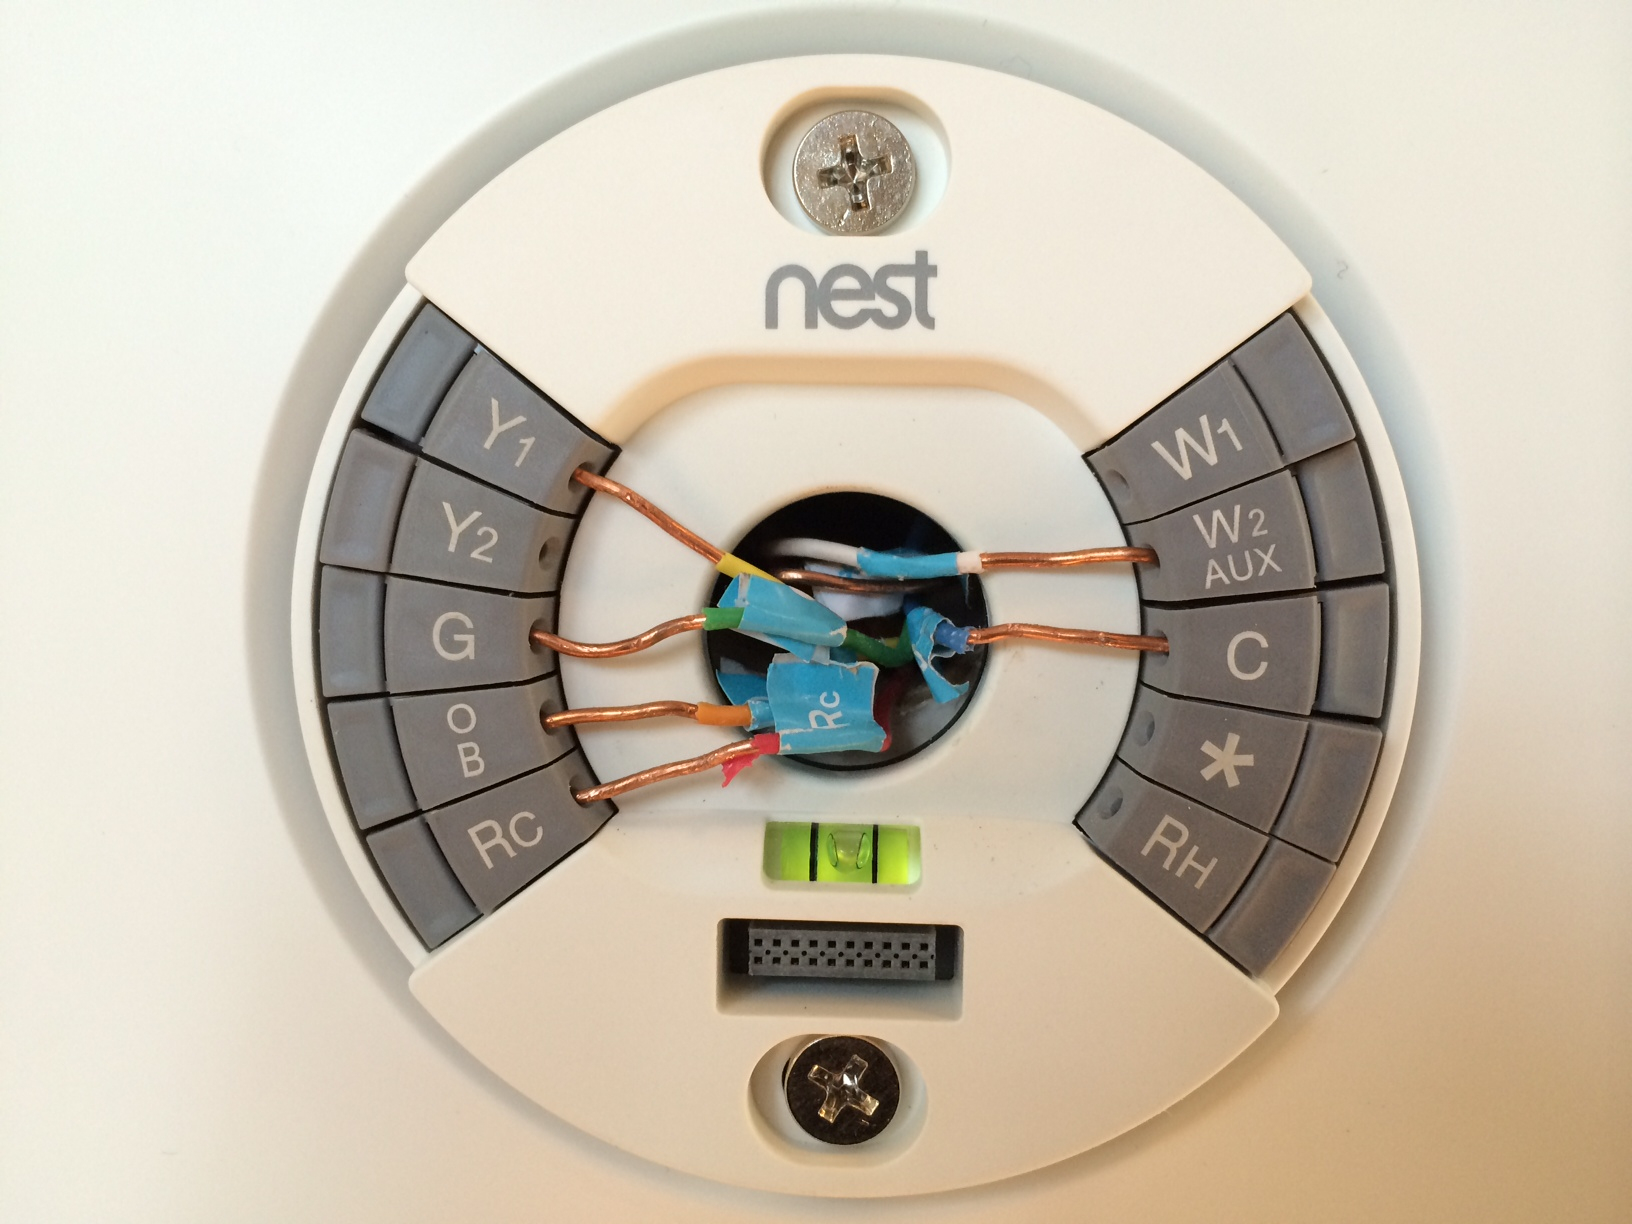 Nest Thermostat Heat Pump Wiring Diagram Besides Baseboard Heater - Goodman Nest Thermostat Wiring Diagram